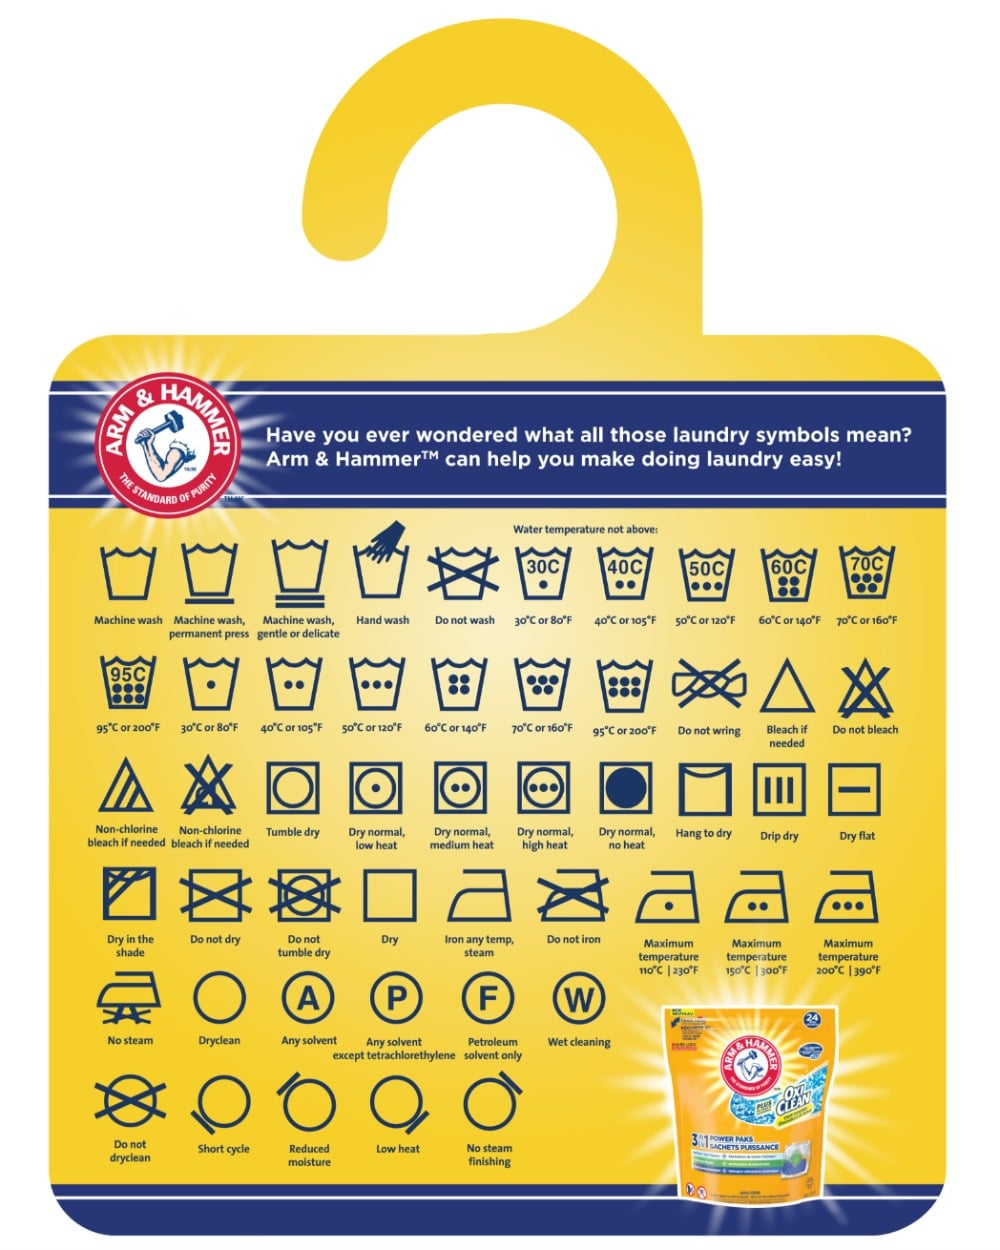 Arm and Hammer Laundry Tips